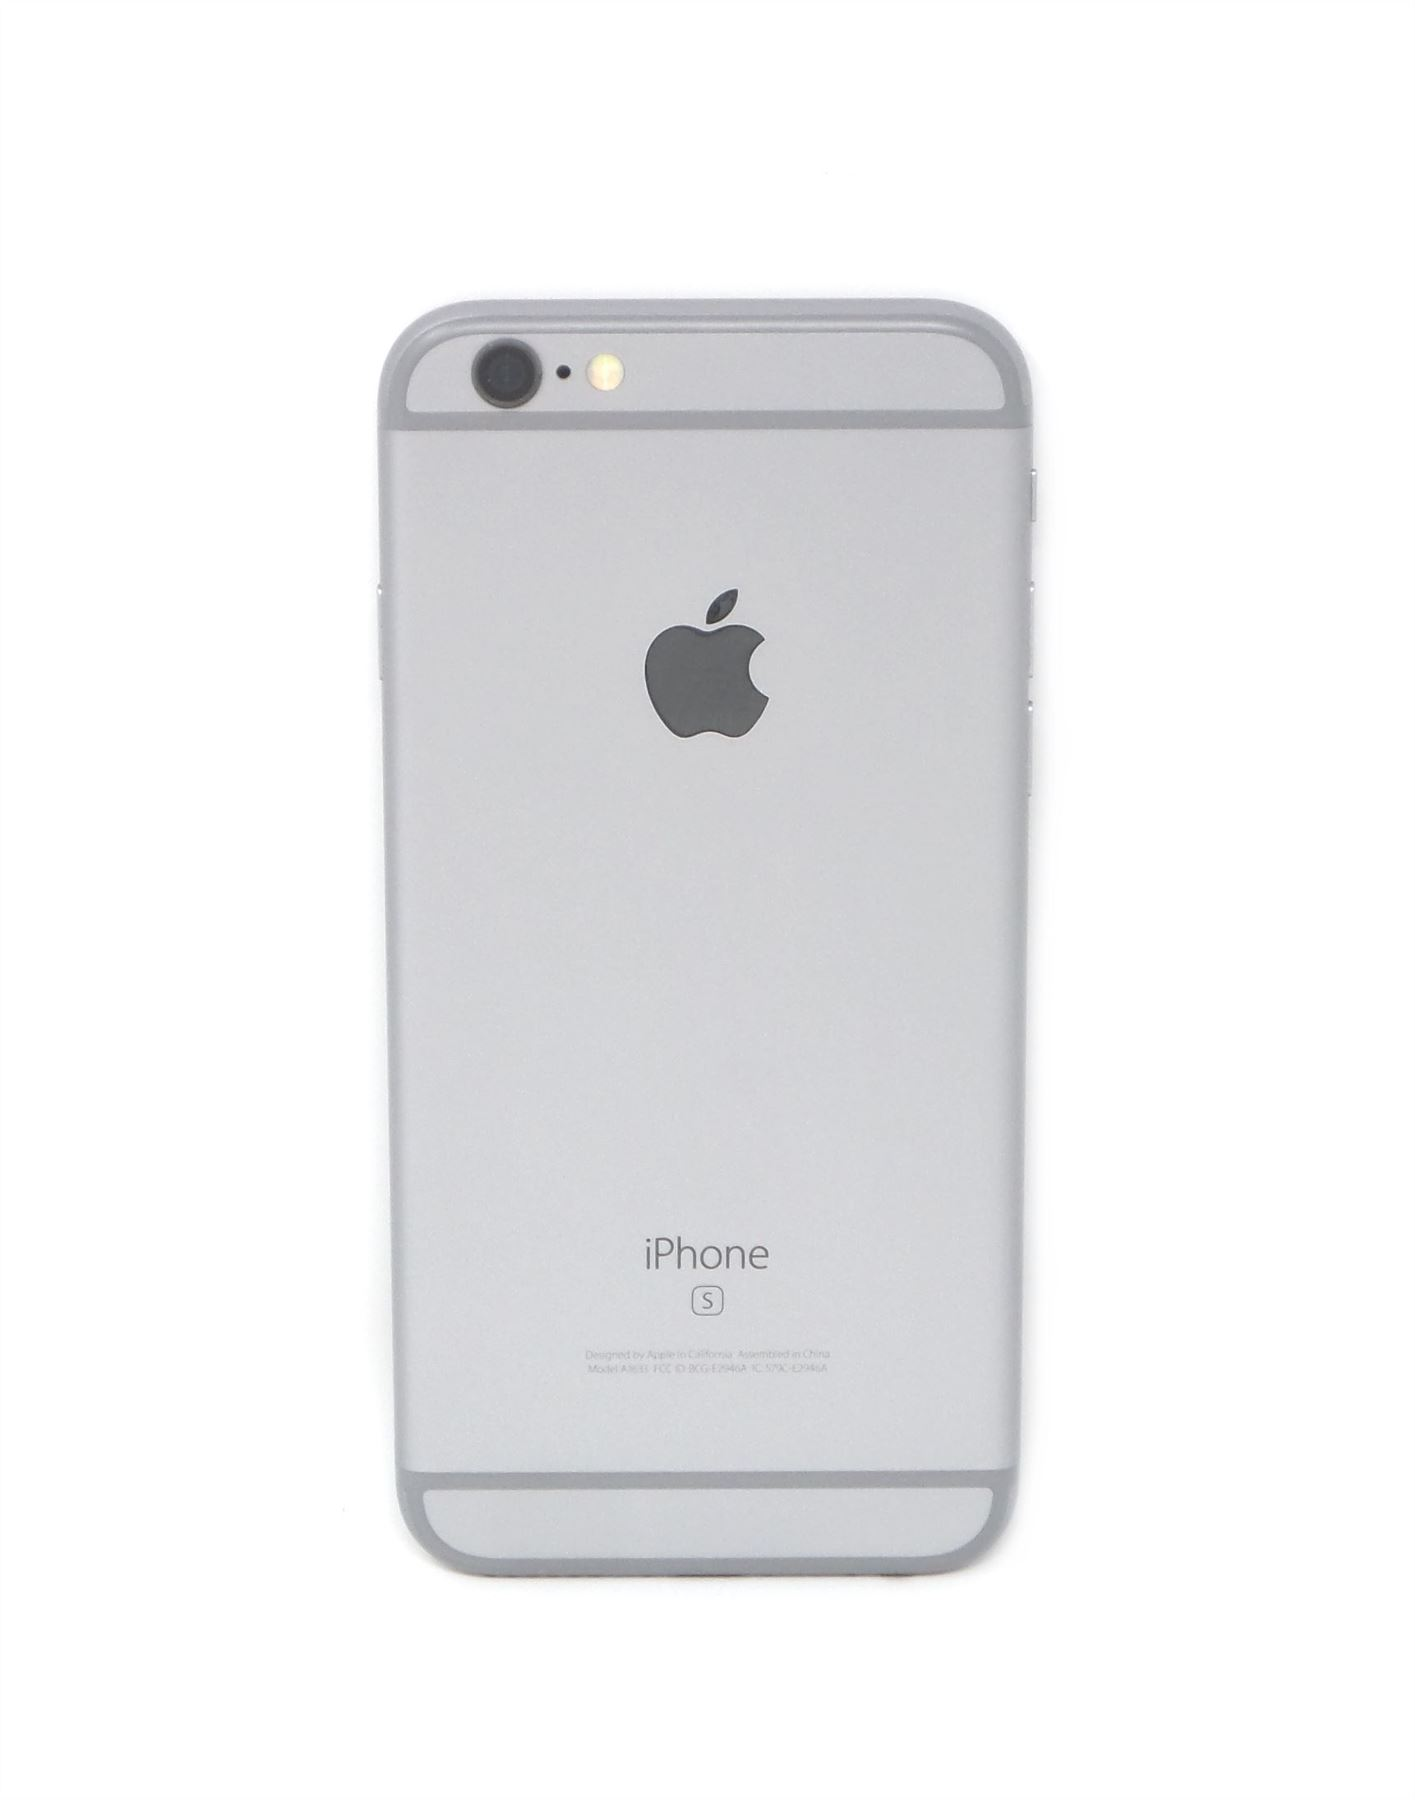 Apple-iPhone-6s-Carrier-Options-AT-amp-T-T-Mobile-Verizon-Unlocked-16-64-128GB-New thumbnail 24